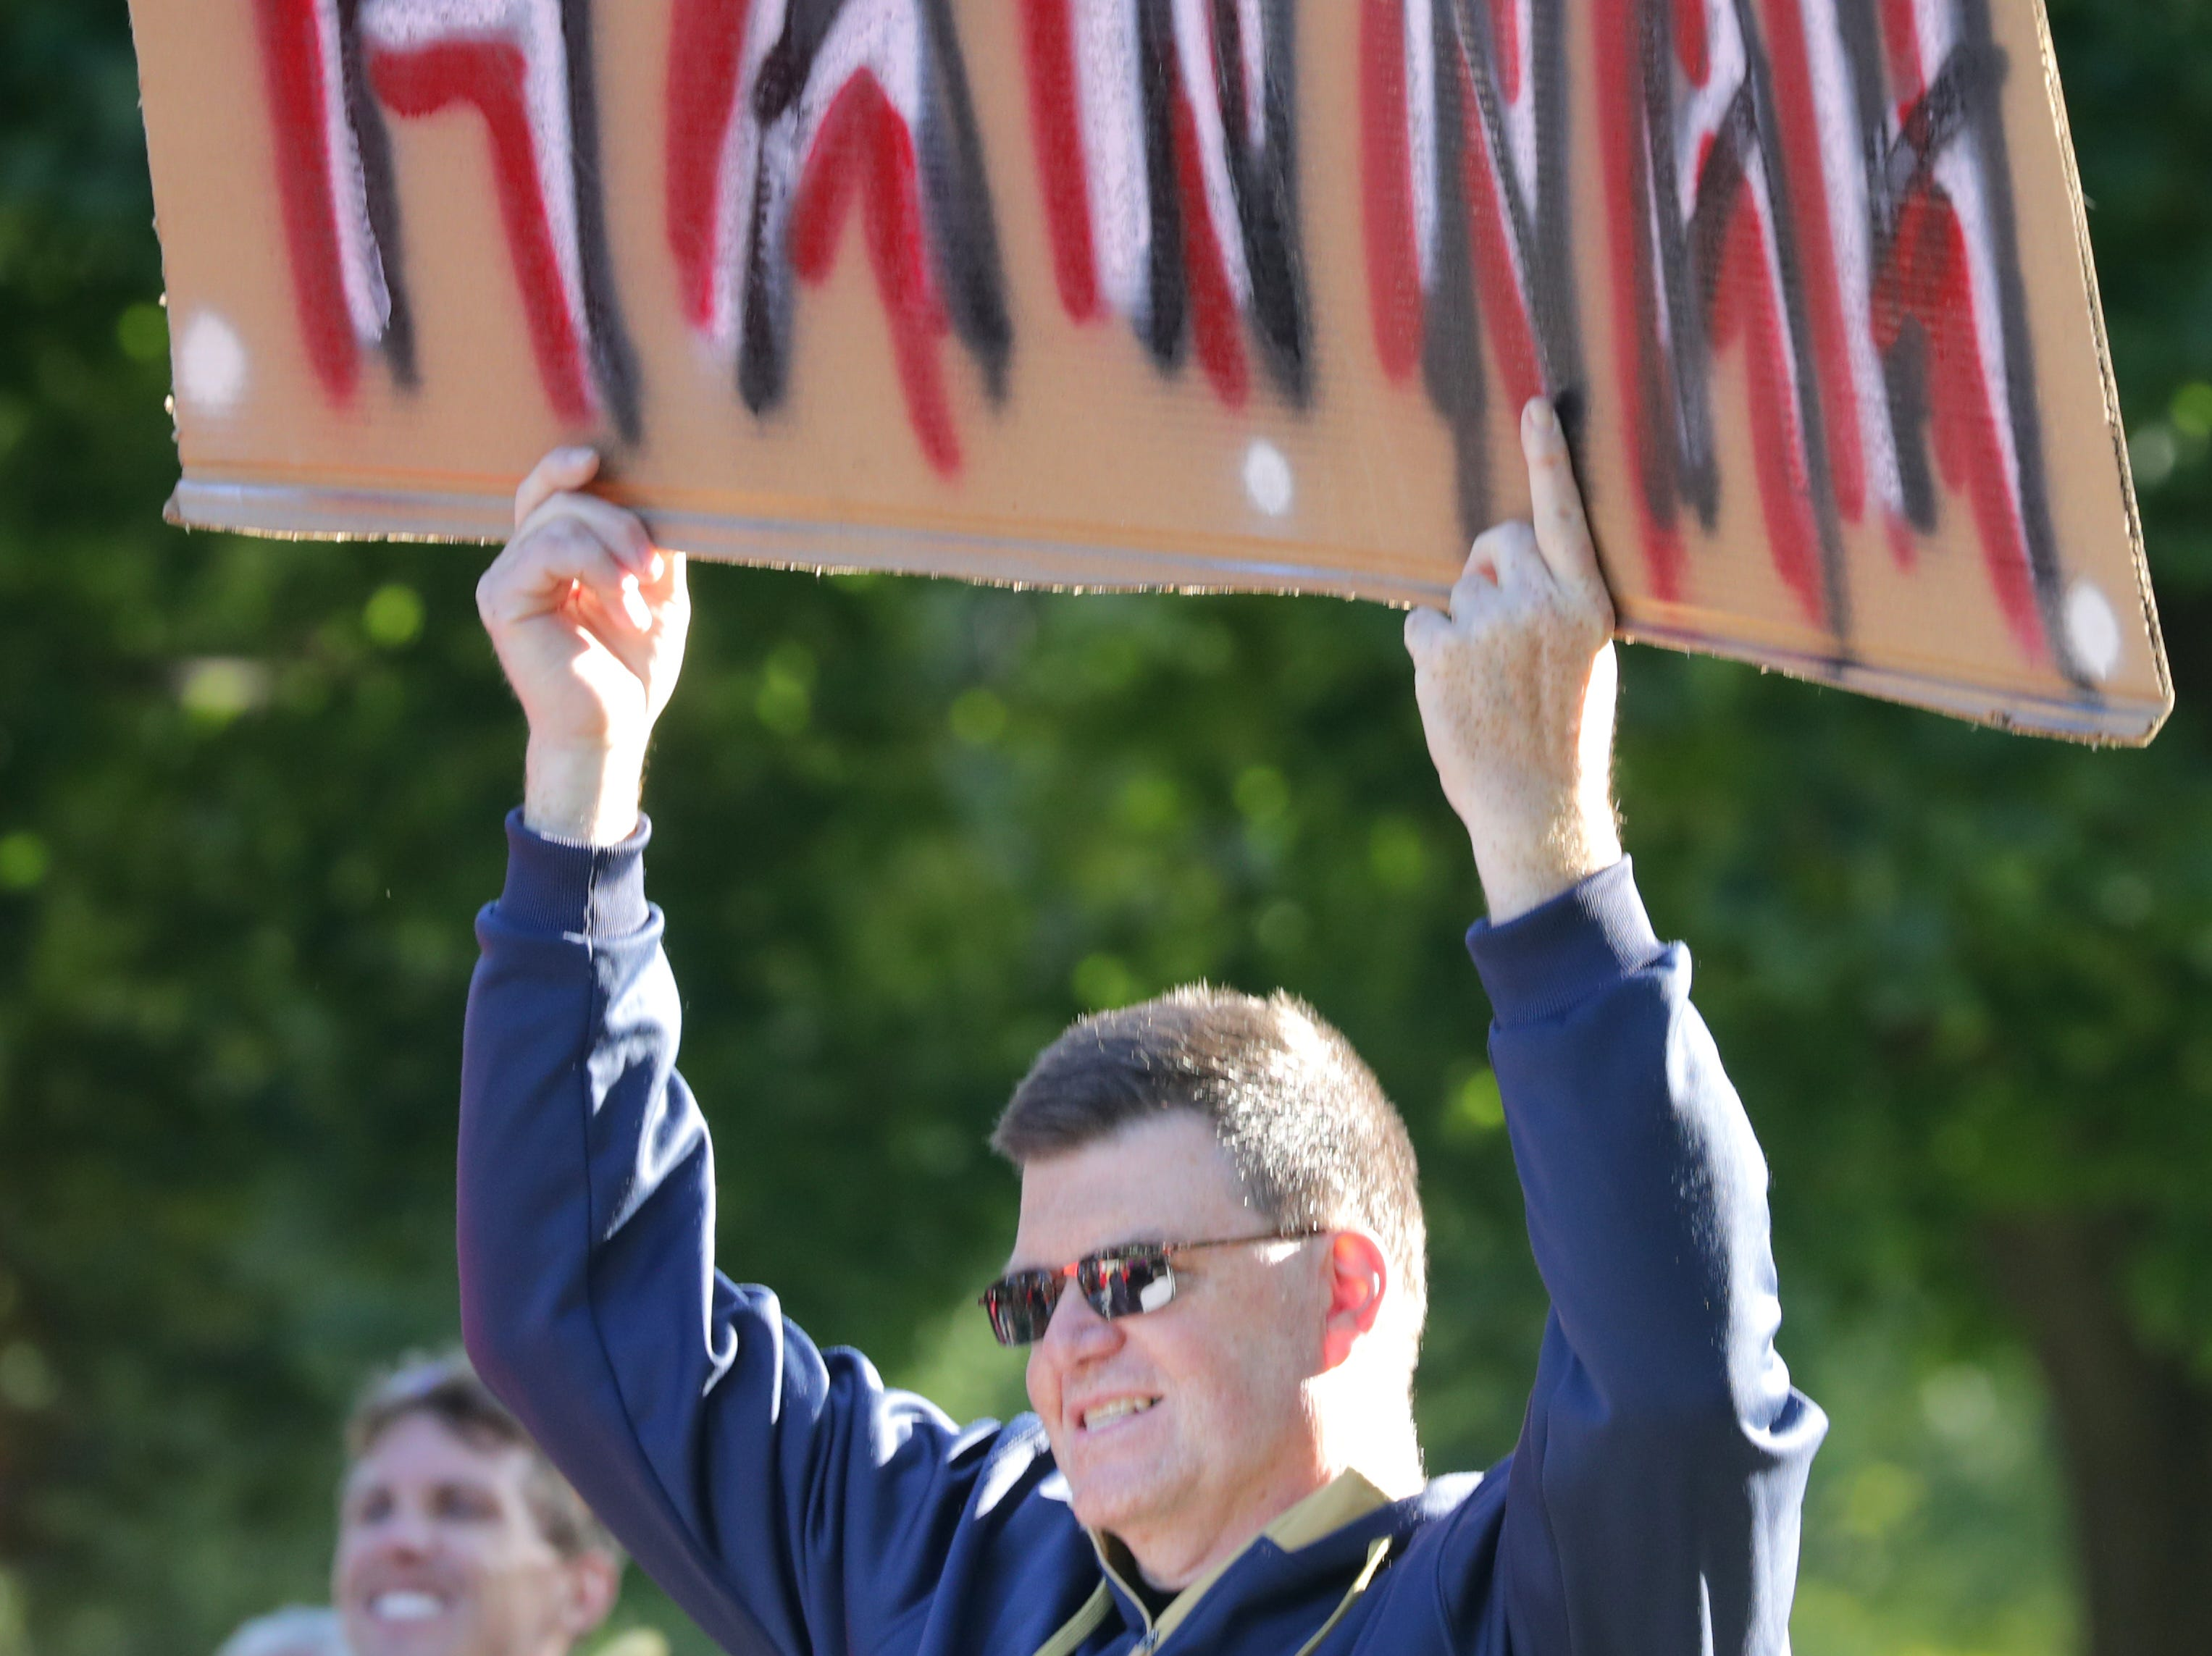 Brian Still cheers at the finish line during the 28th annual Community First Fox Cities Marathon on Sunday, September 23, 2018, in Neenah Wis. Wm. Glasheen/USA TODAY NETWORK-Wisconsin.